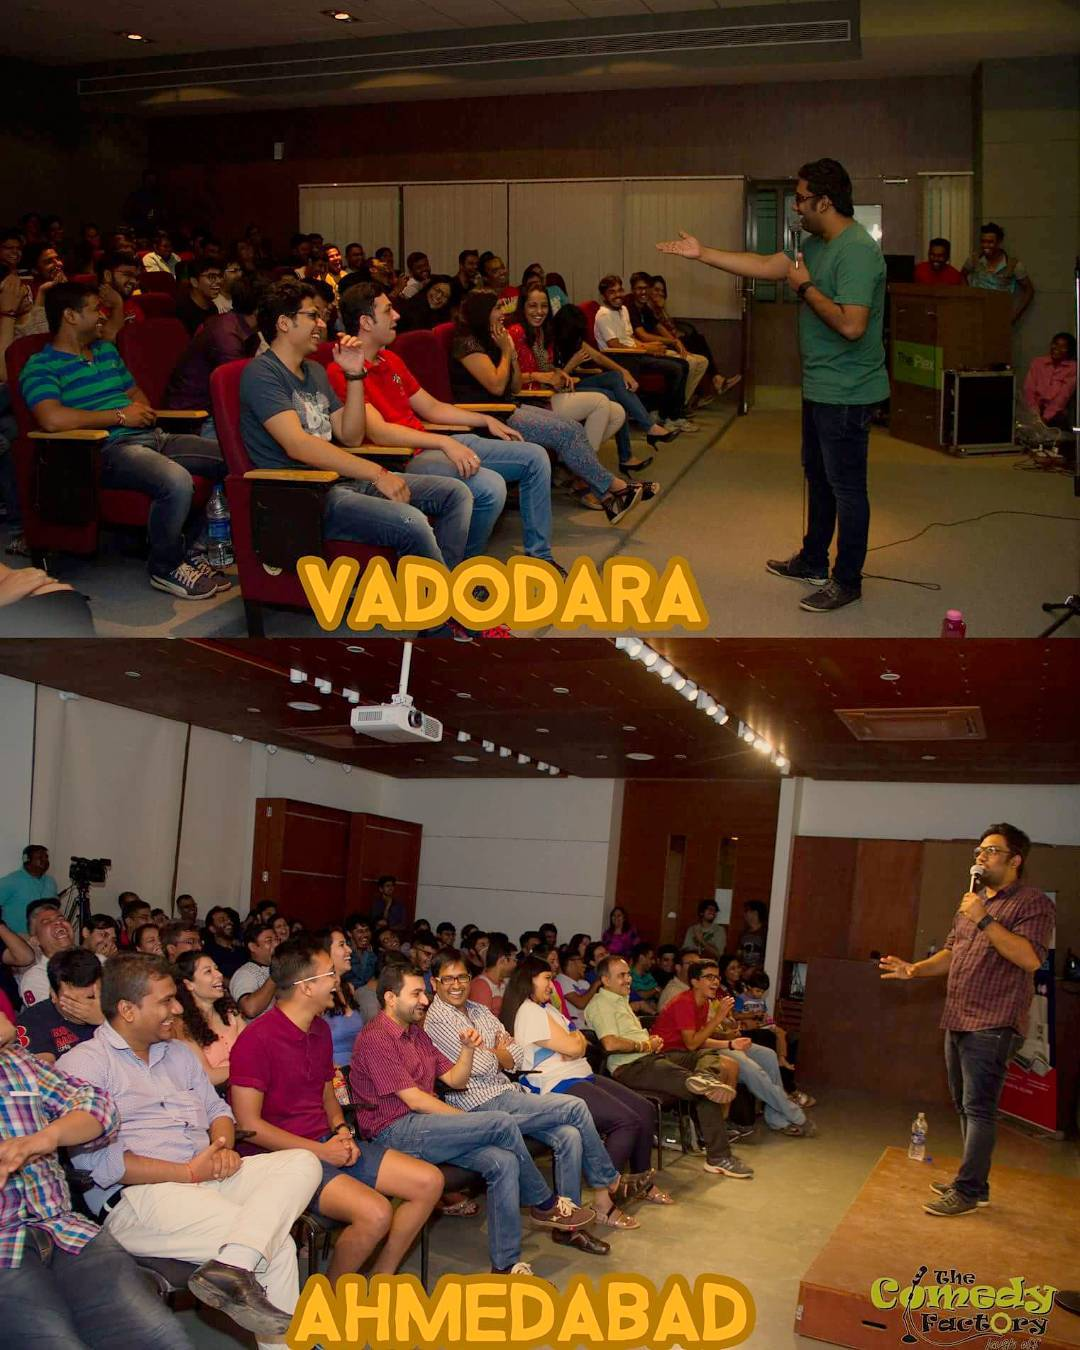 A Shuddh Gujarati - Did my first solo special in Baroda and Ahmedabad for a SOLD OUT audience. Best 2 shows of my life. Great start for @gujaratcomedyfestival - Thank you all for supporting and being my true strength. We have come a long way in this beautiful relationship bridged by truth and comedy. #standupcomedy #live #special #baroda #ahmedabad #gcf2k16